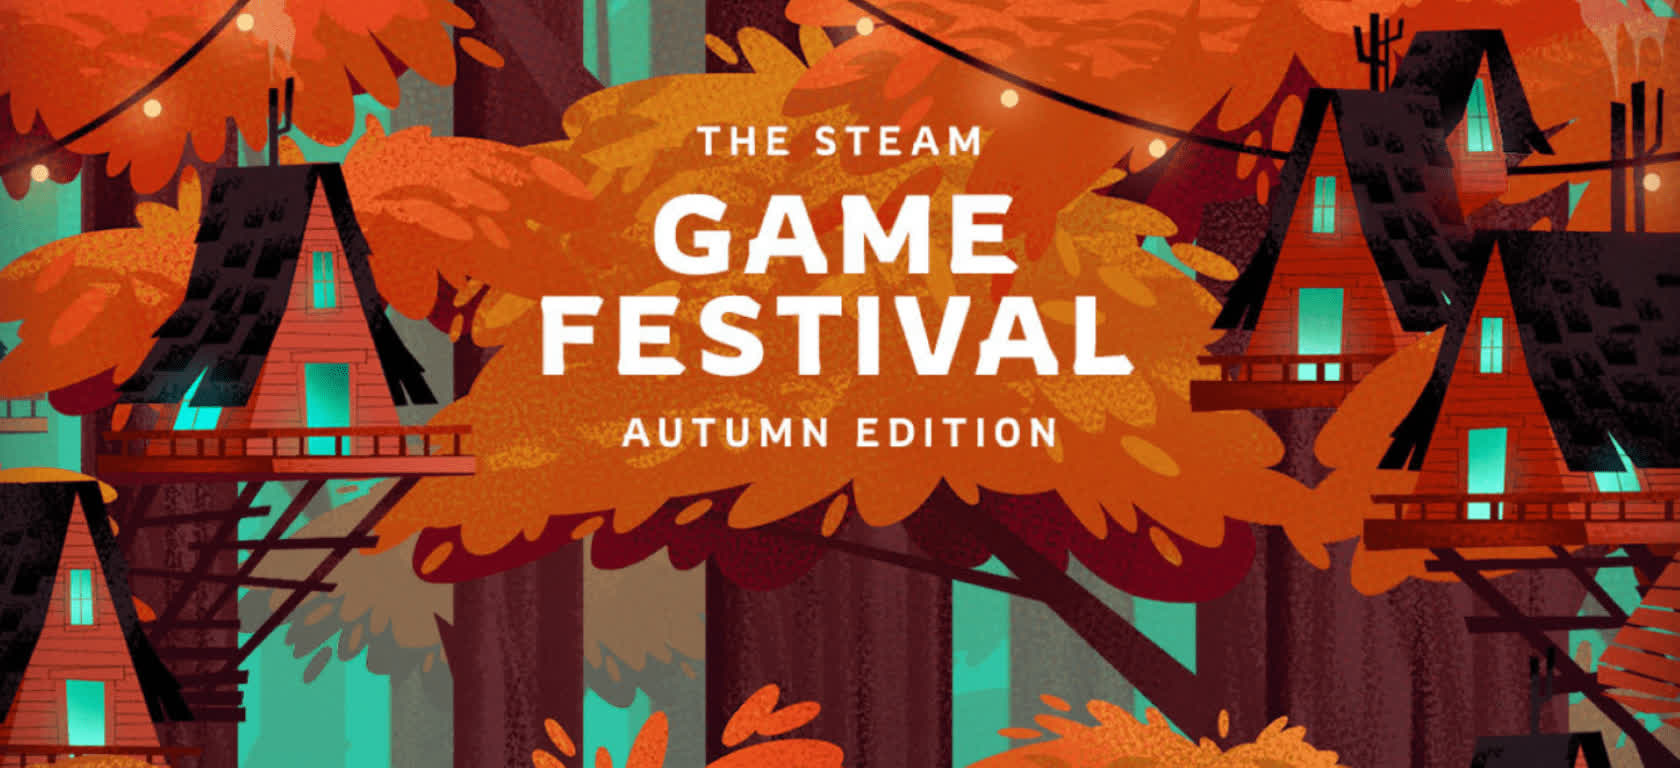 Steam's Autumn Game Festival arrives with hundreds of new game demos